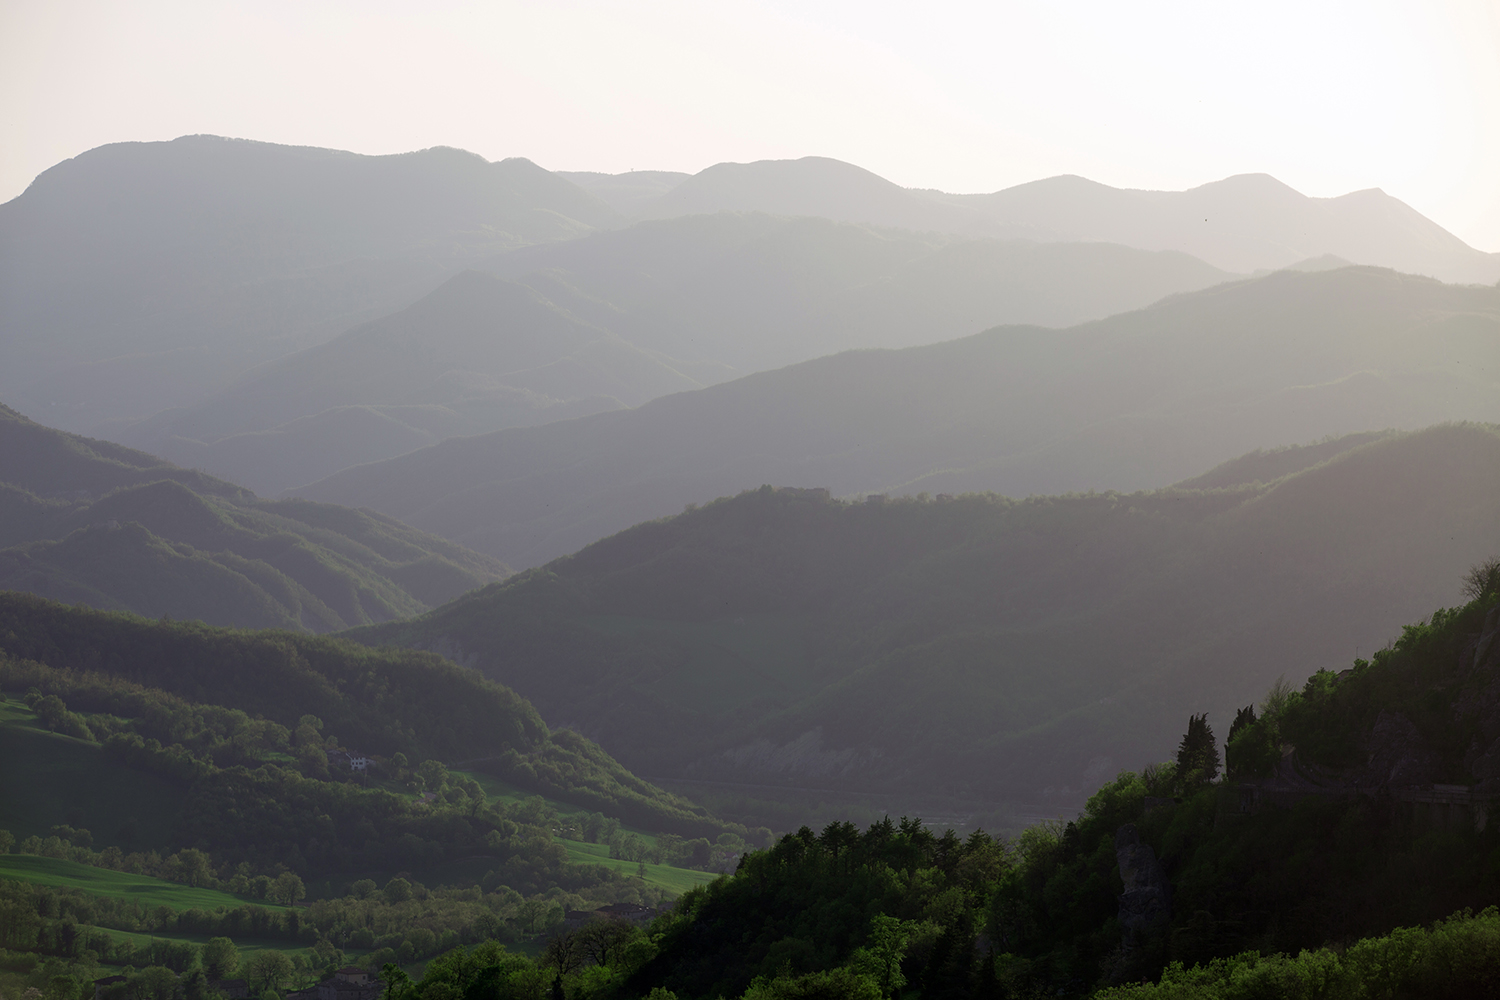 """View of Valmarecchia from the slopes of Mount San Marco, in Villagrande (RN), where one of Valmarecchia official view-points of the """"Mona Lisa"""" landscapes was located."""